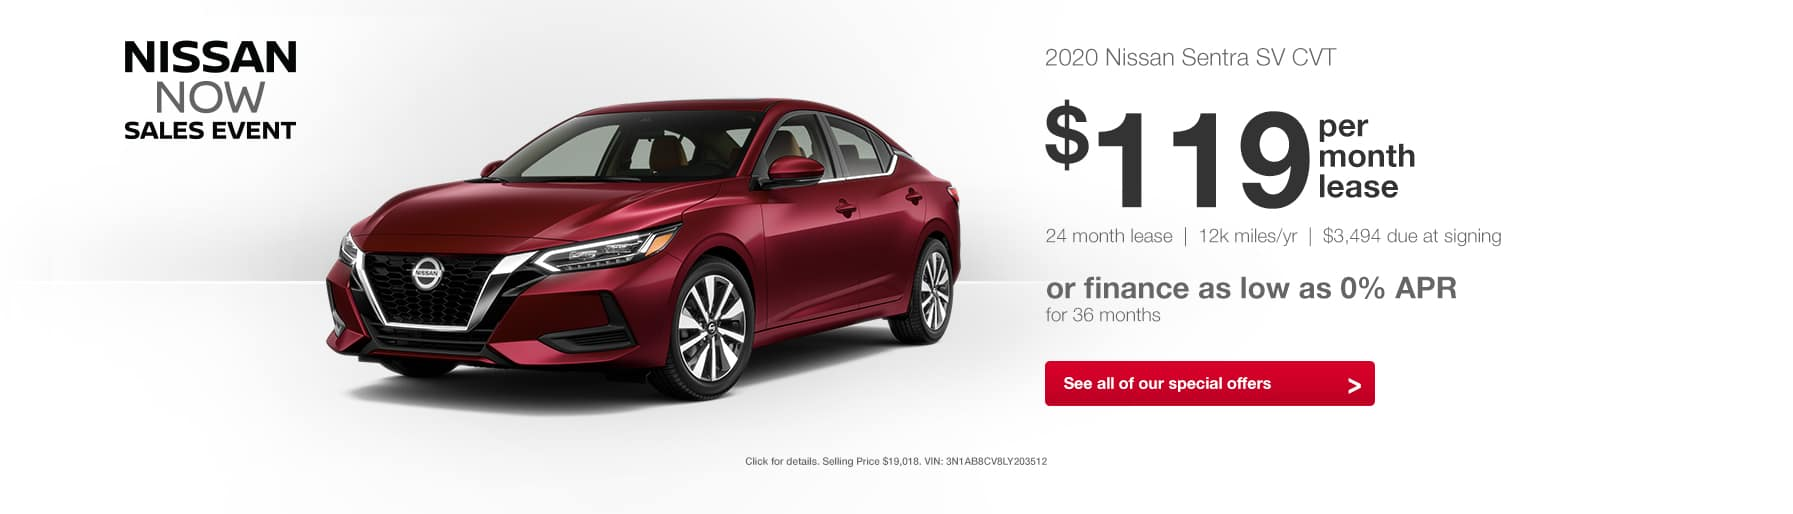 2020 Nissan Sentra Nissan Now Sales Event Lease Special